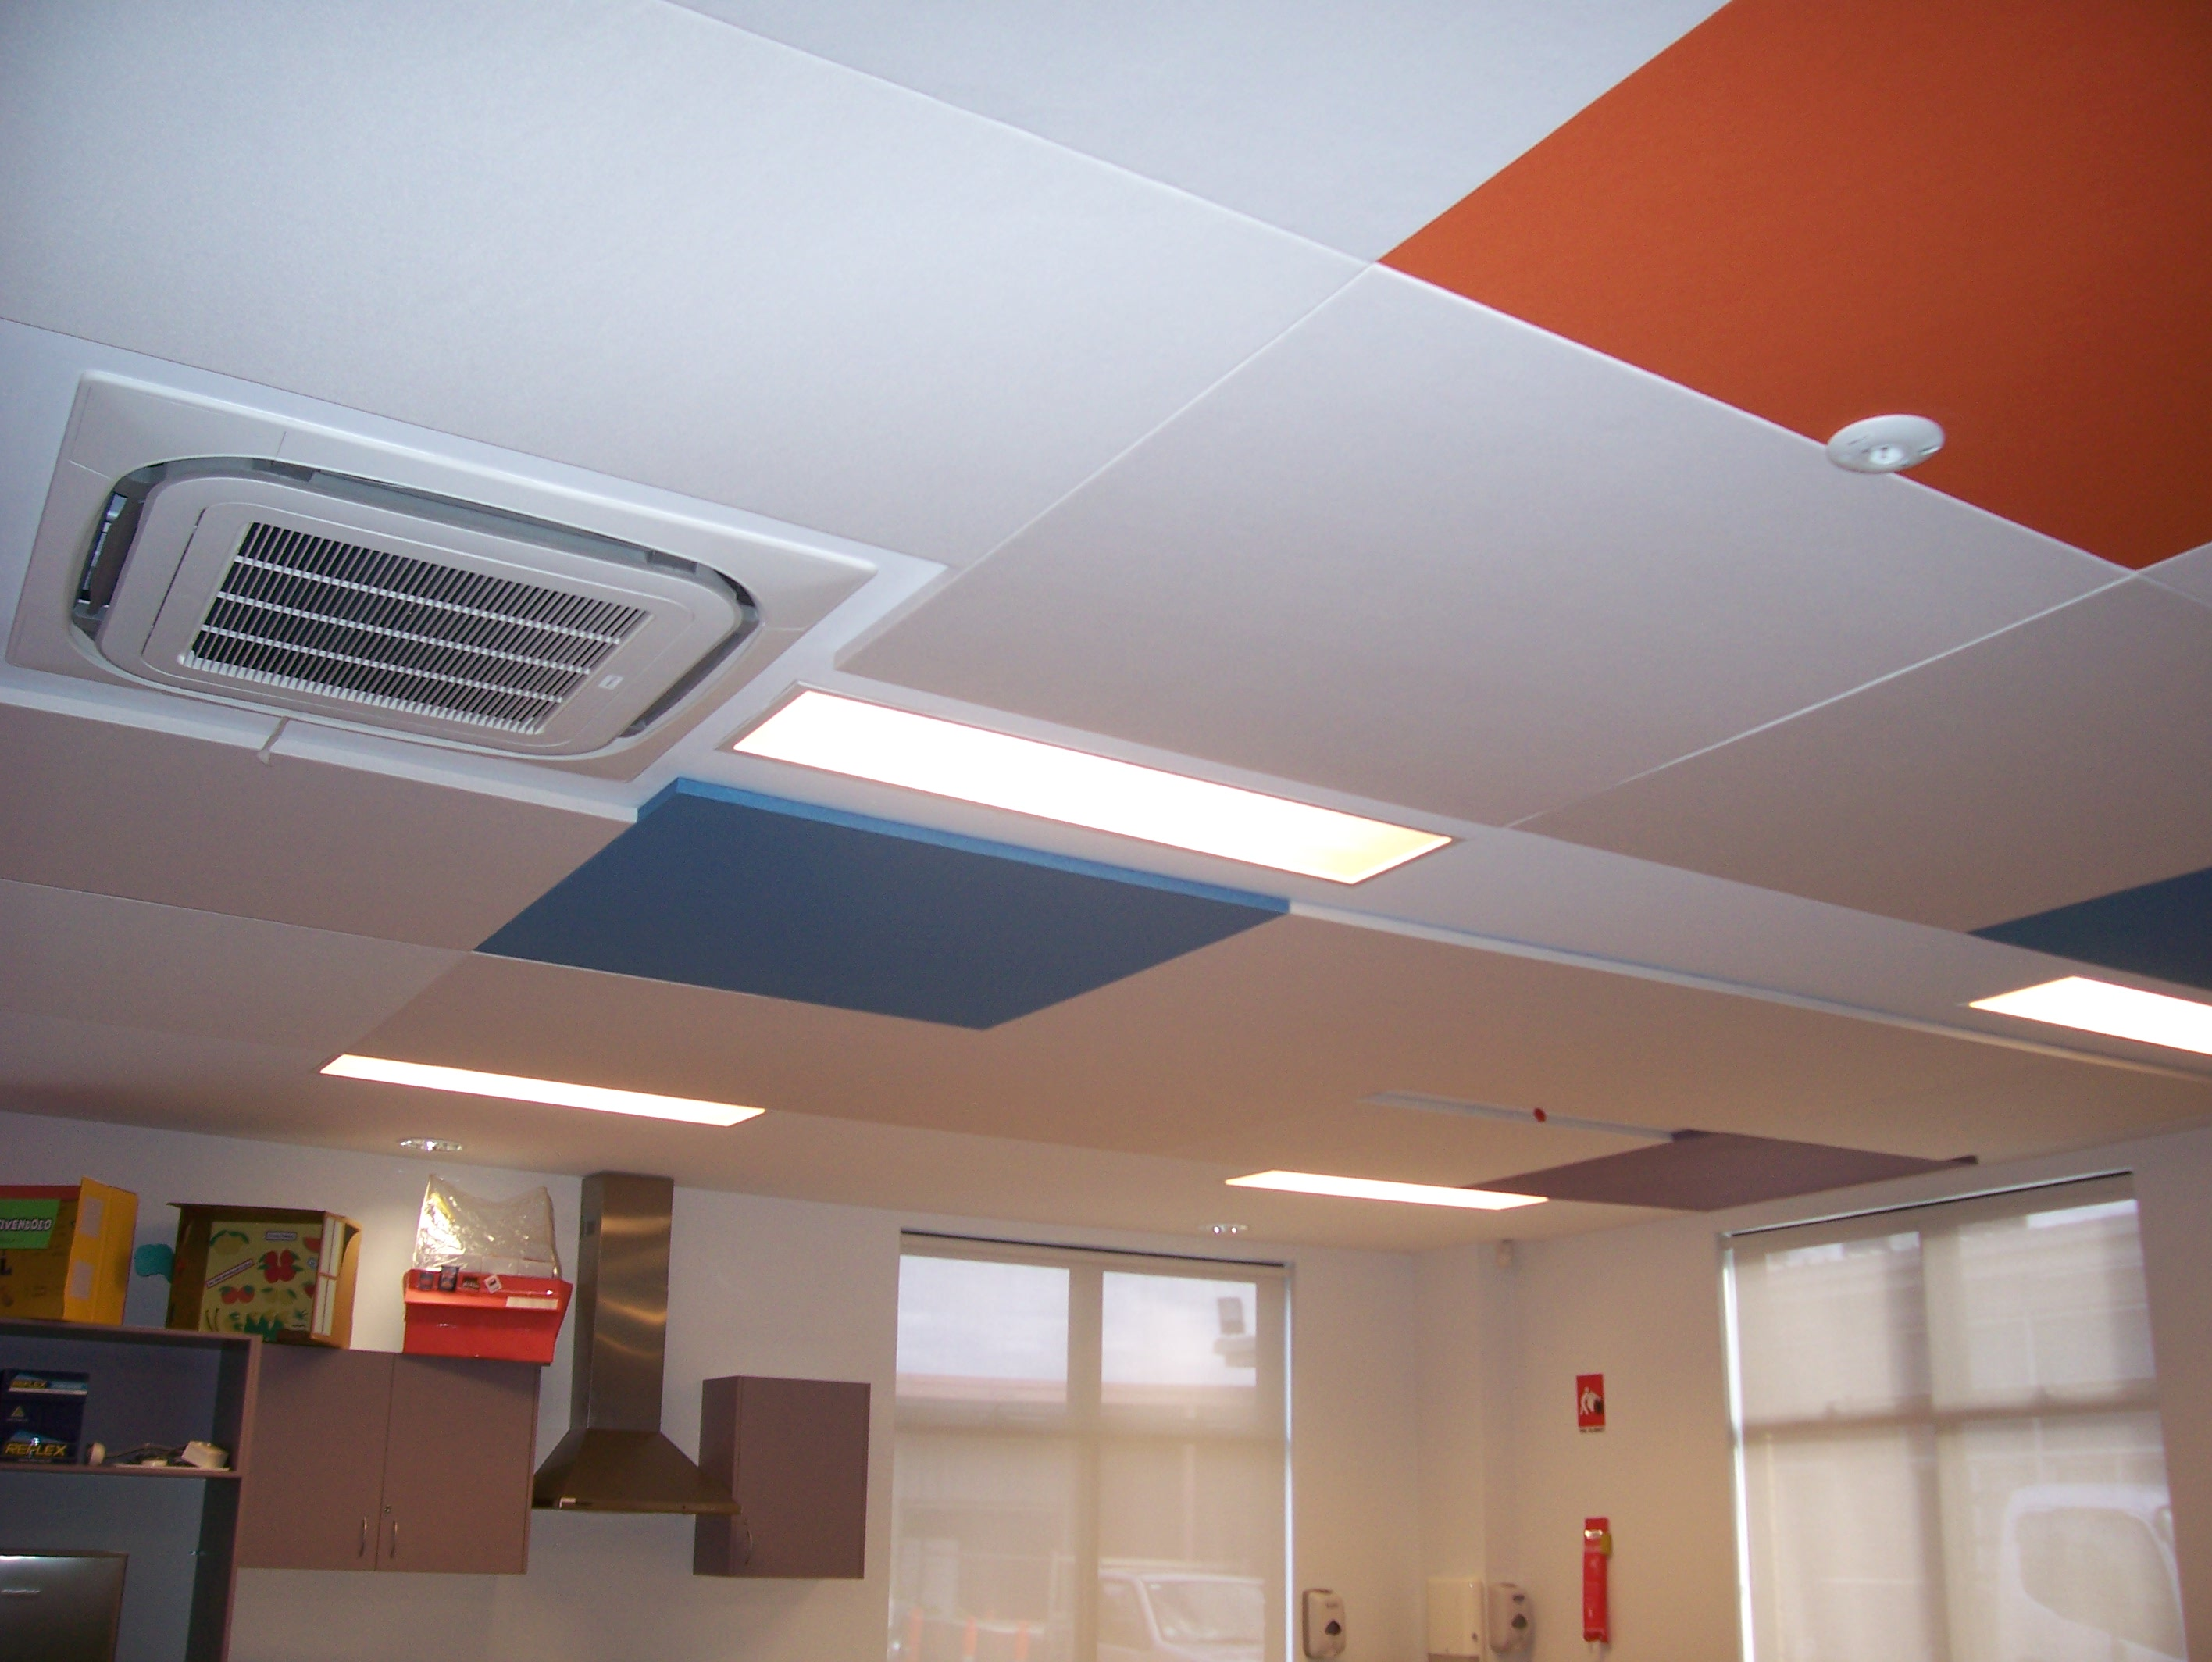 Acoustic fabric ceiling tiles